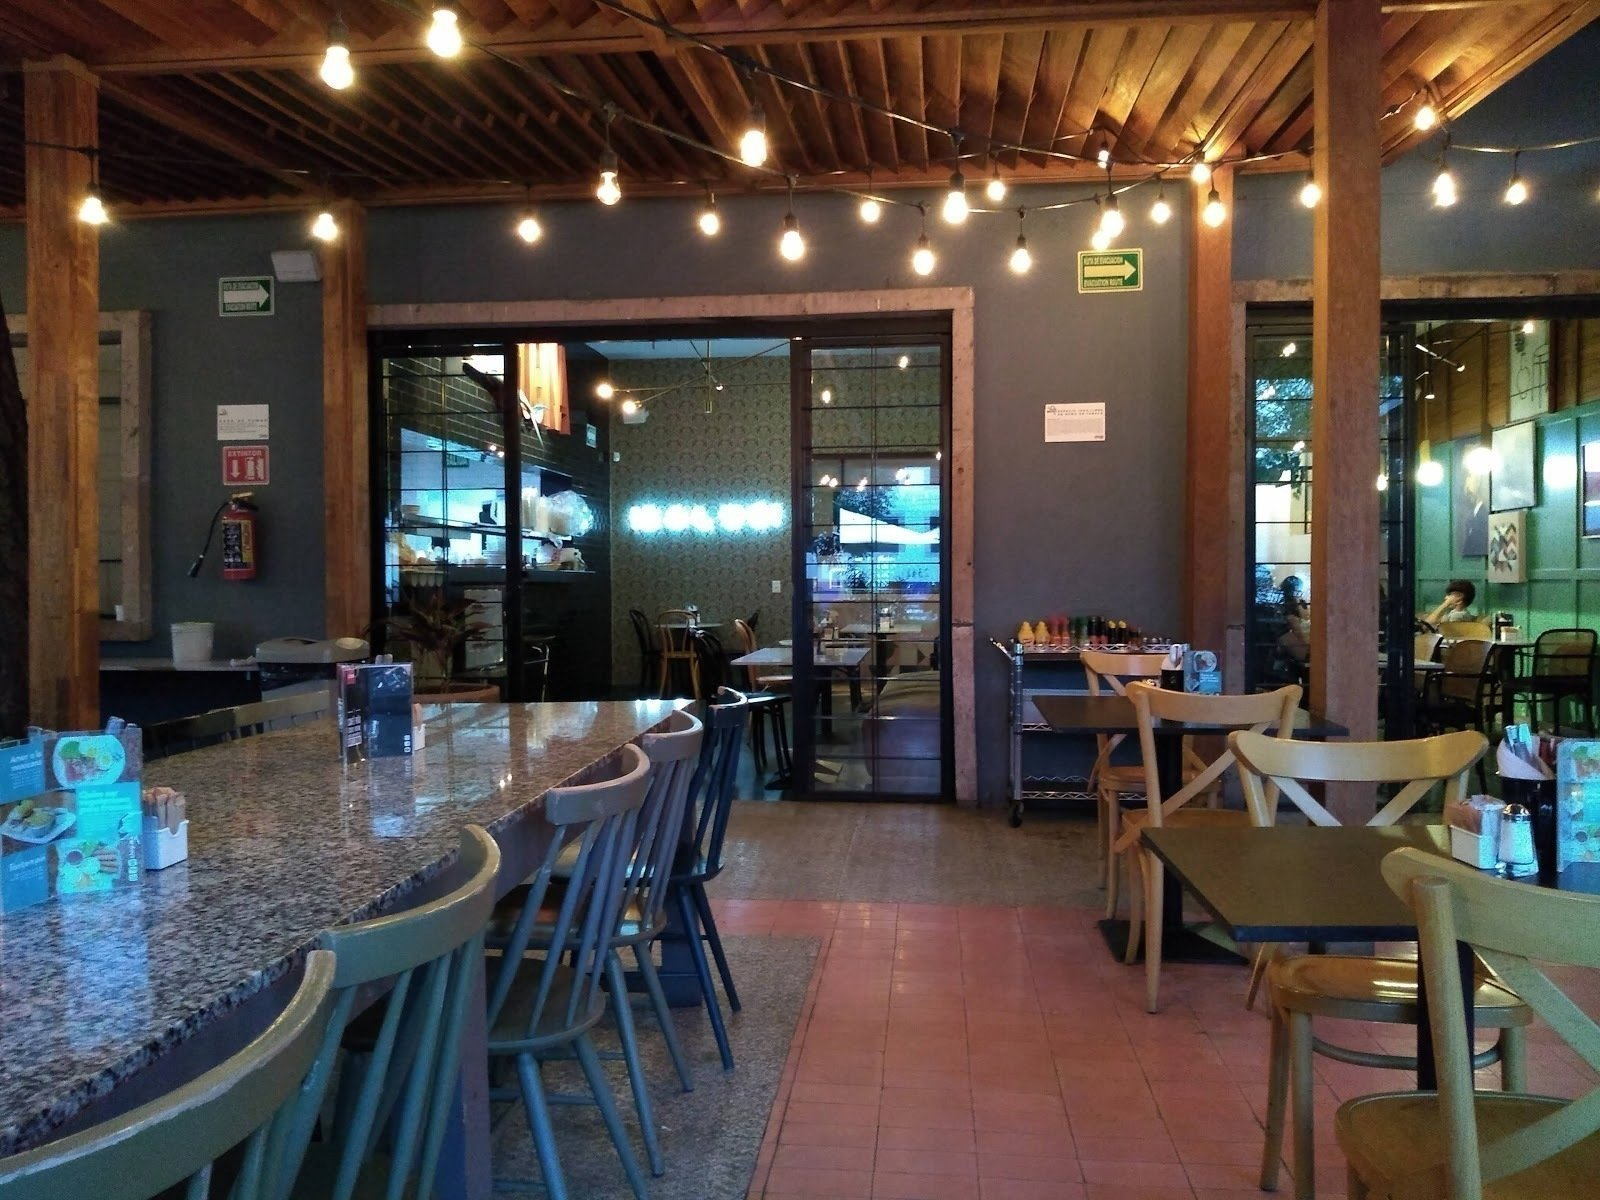 Chop Cup Coffee: A Work-Friendly Place in Guadalajara